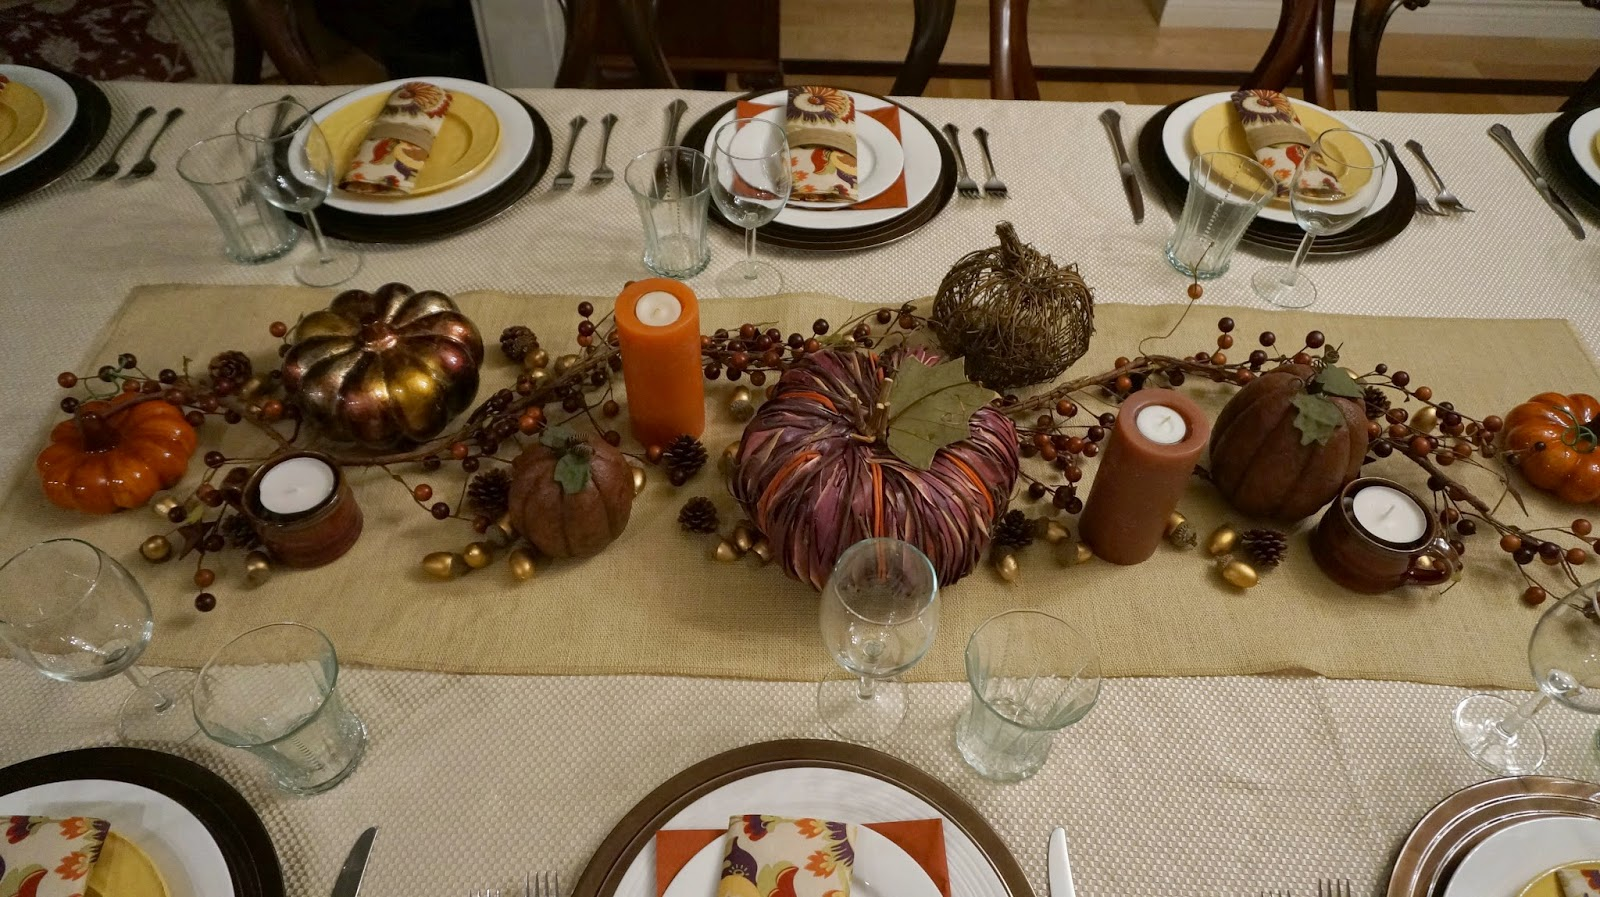 ... I\u0027ve been collecting different kinds of pumpkins and for Thanksgiving this year I used them with a berry vine and candles on a burlap table runner. & Mennonite Girls Can Cook: Setting a Holiday Table